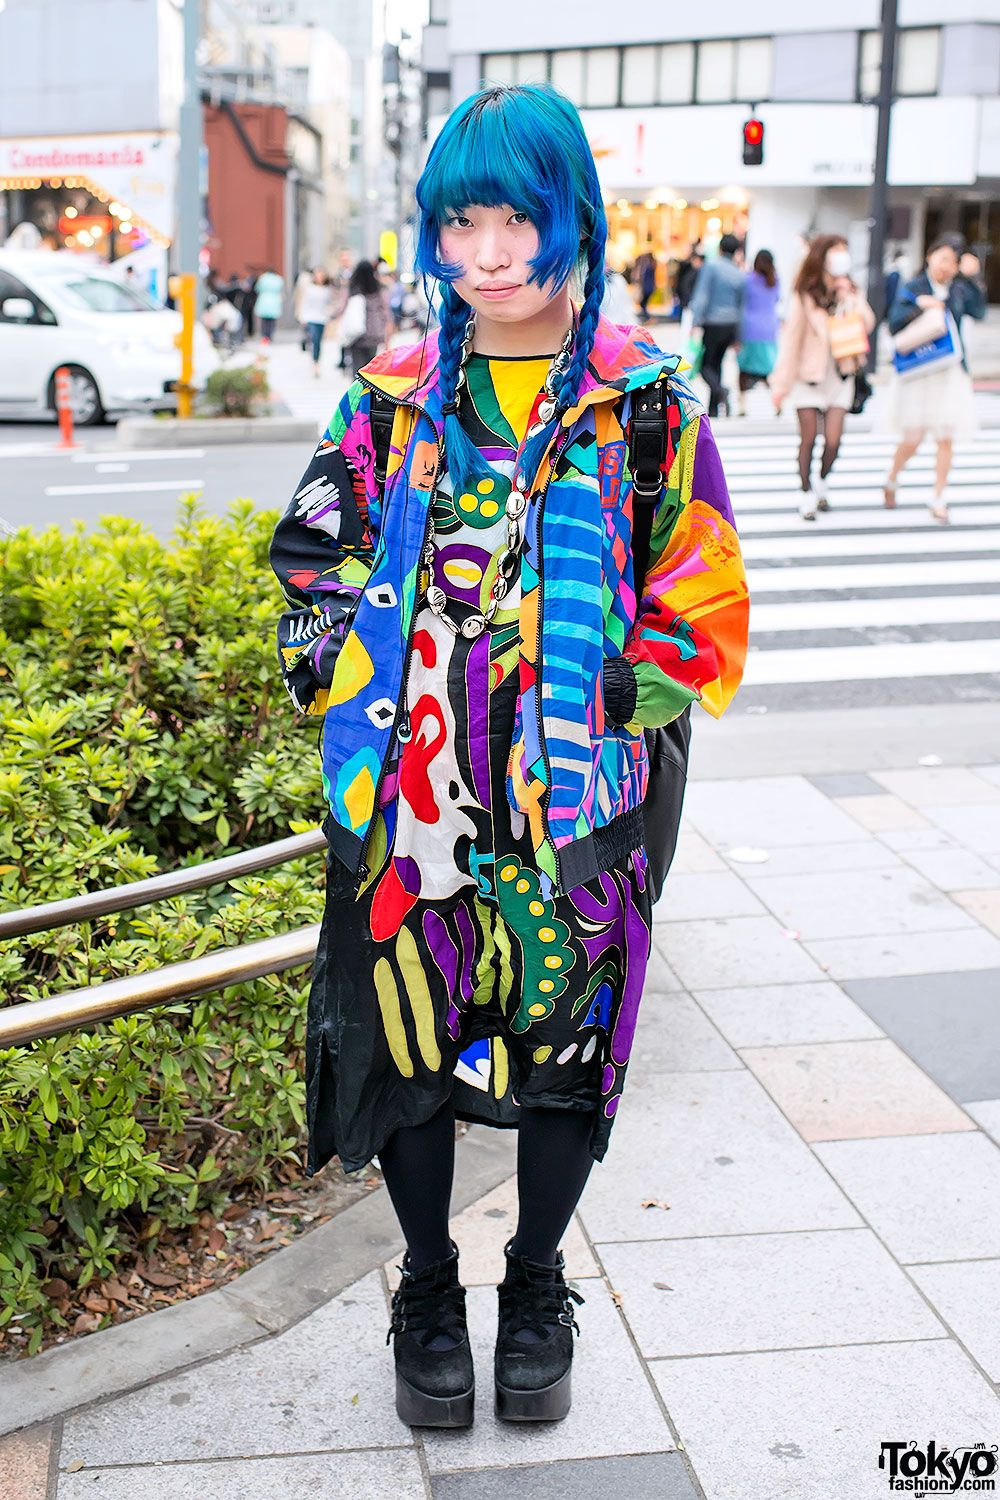 Colorful Fashion & Patterns in Harajuku | Japanese Street ...